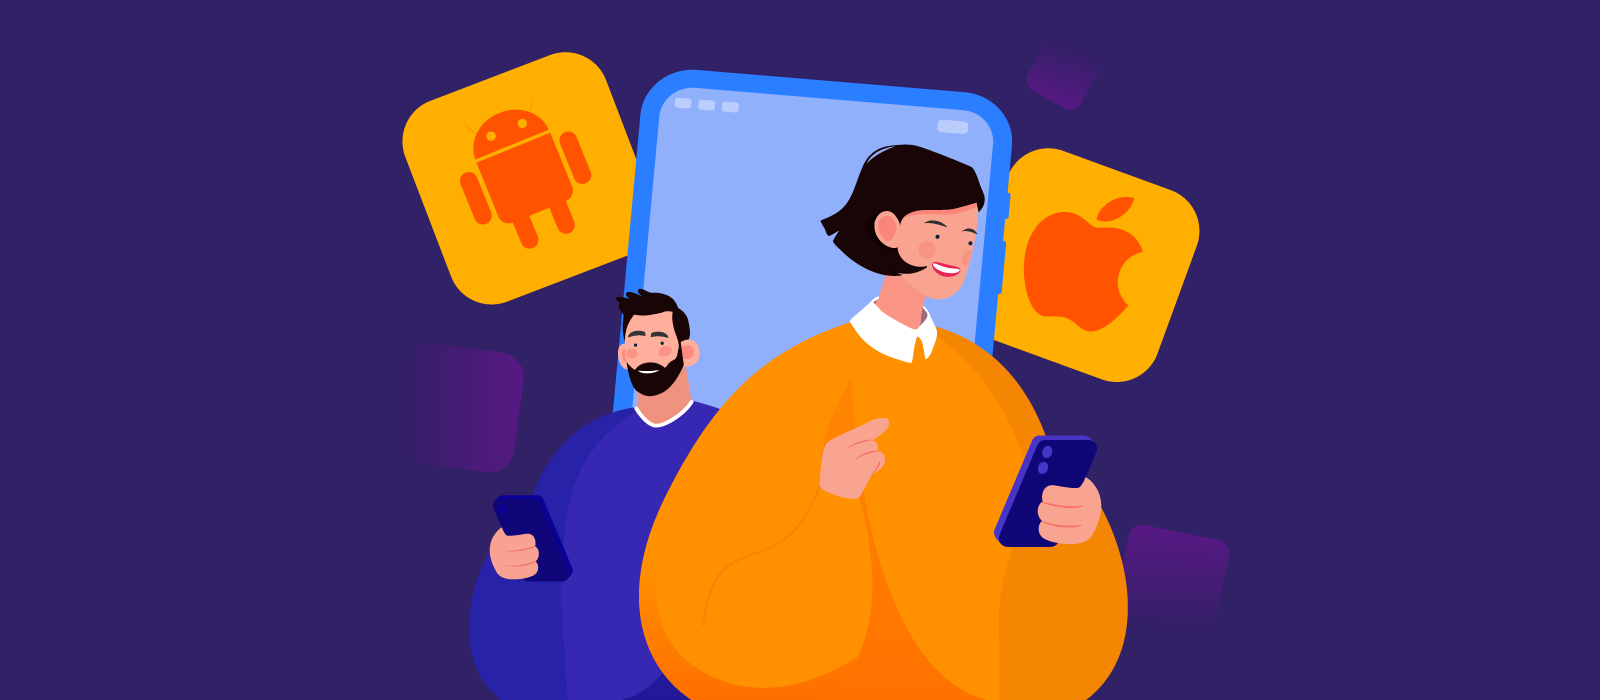 Two people using Android and iOS platforms